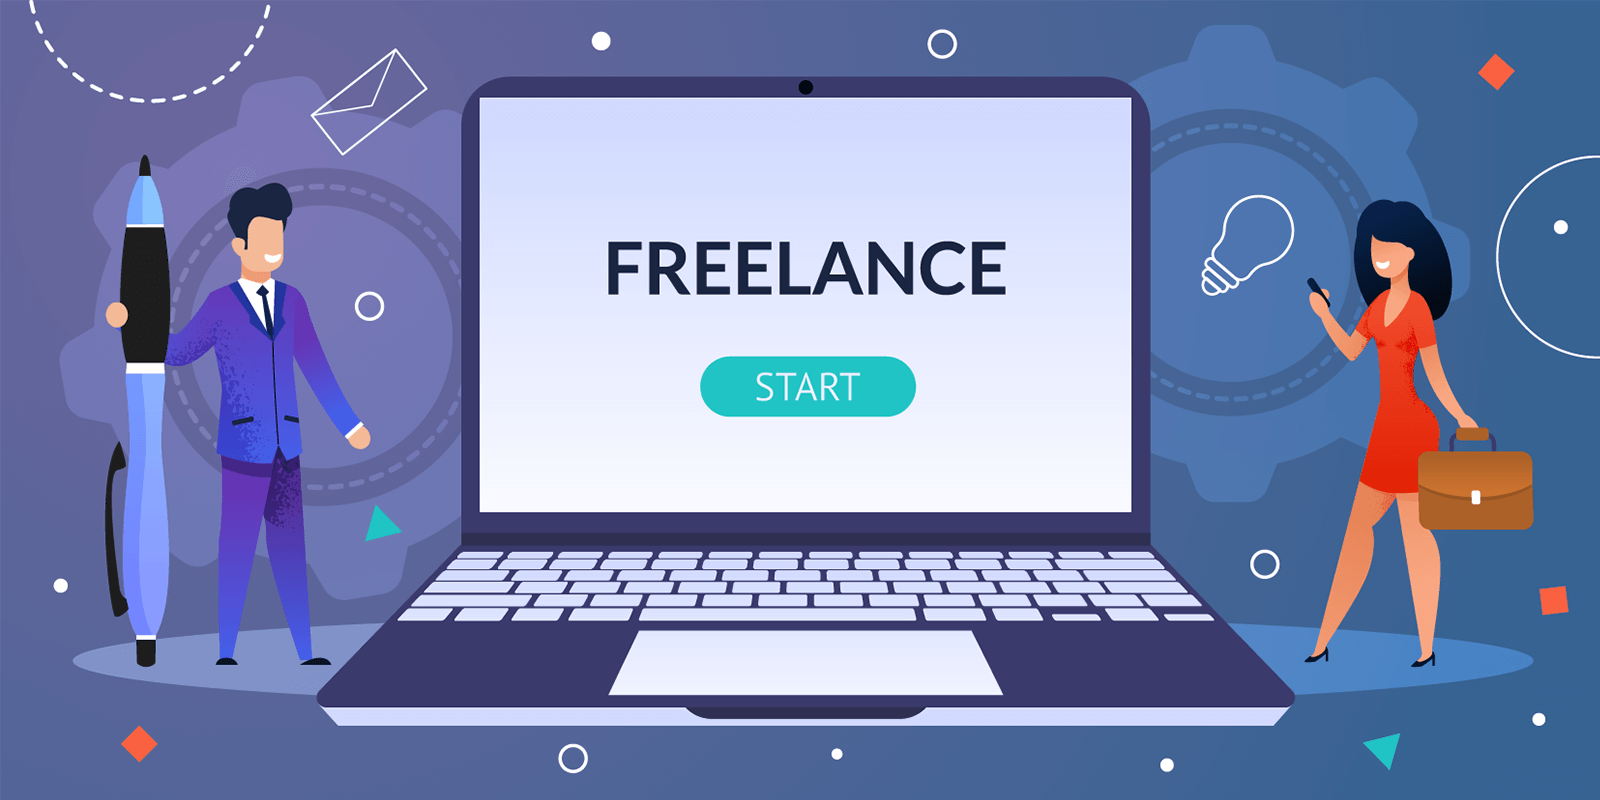 25 Companies That Hire For Remote Freelance Jobs Flexjobs Freelancing Jobs Administrative Jobs Finance Jobs